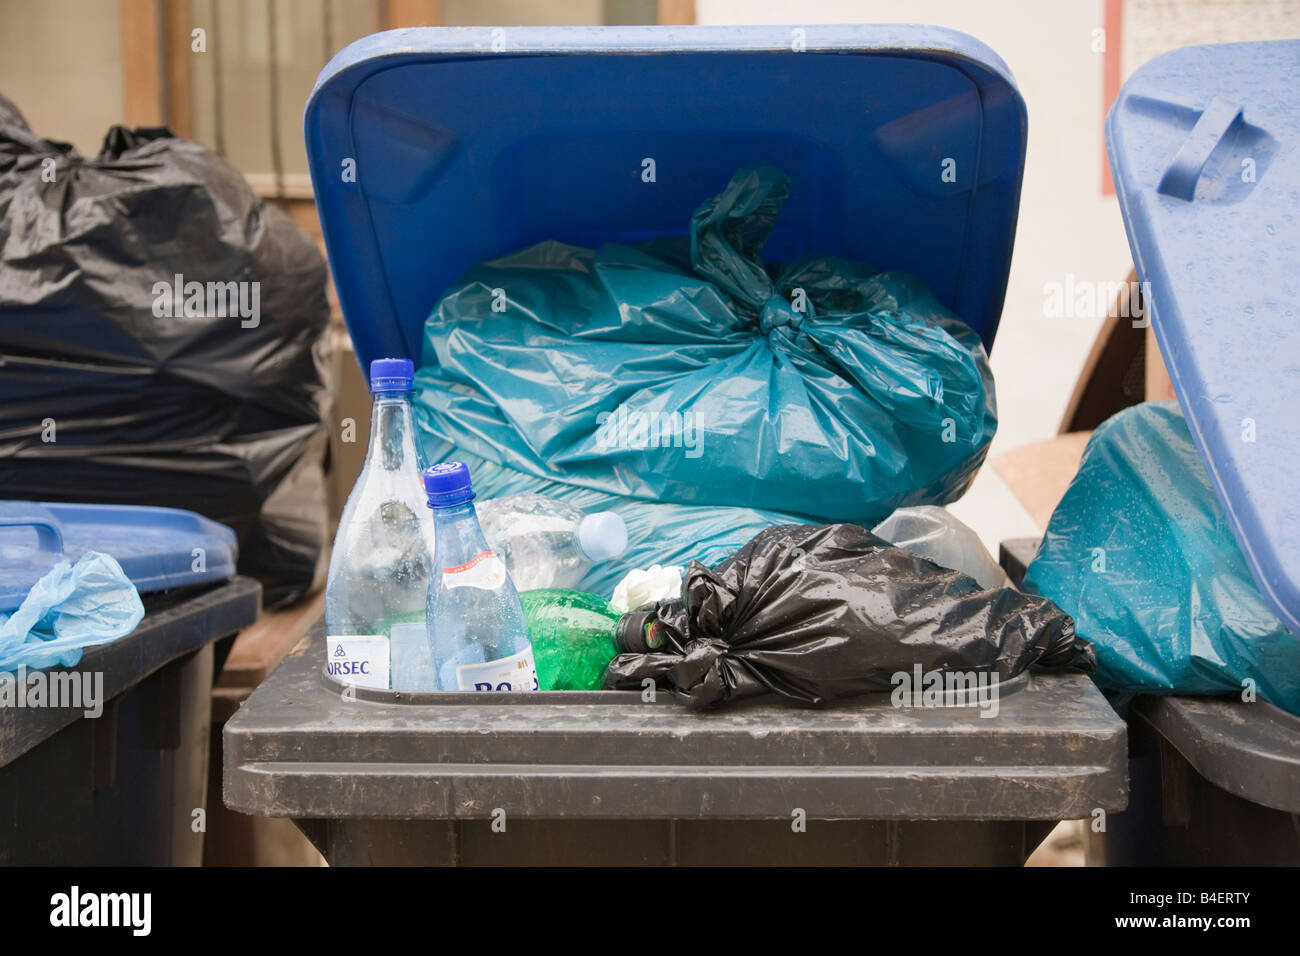 Romania Europe Wheelie bin with lid open overfilled with plastic bags - Stock Image